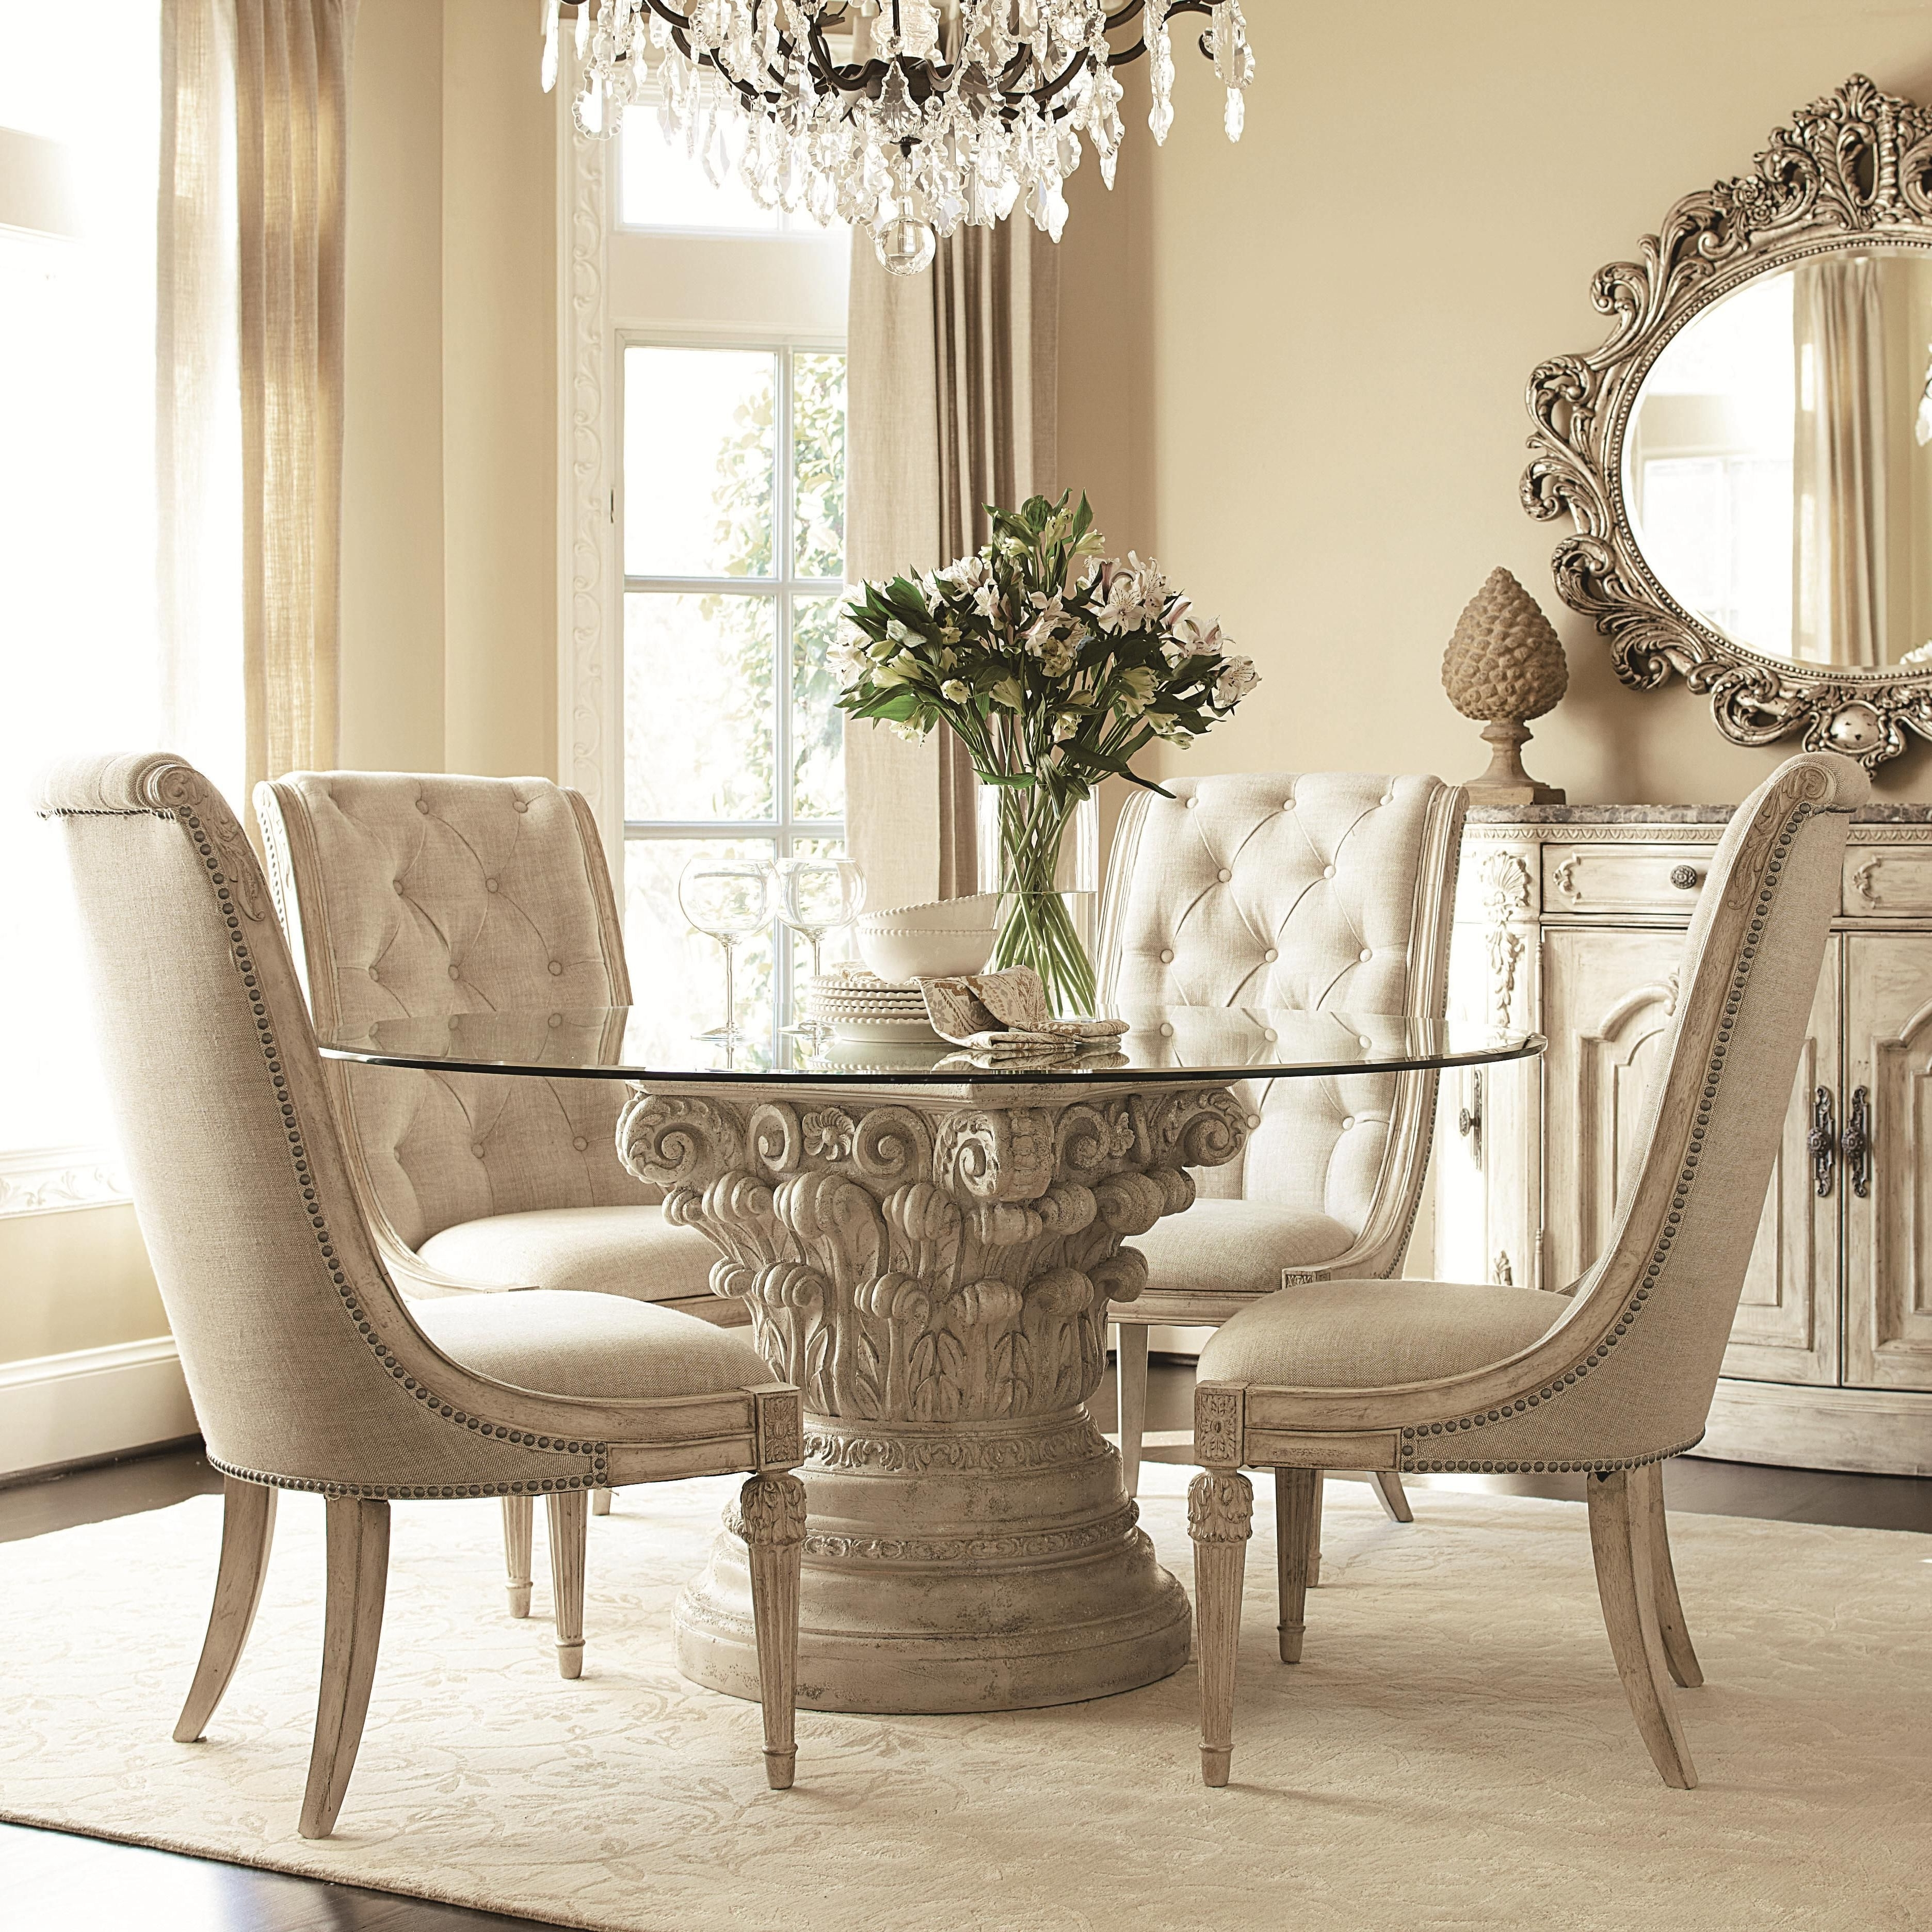 Jessica Mcclintock Home - The Boutique Collection 5 Piece Round with Well-liked Candice Ii 5 Piece Round Dining Sets